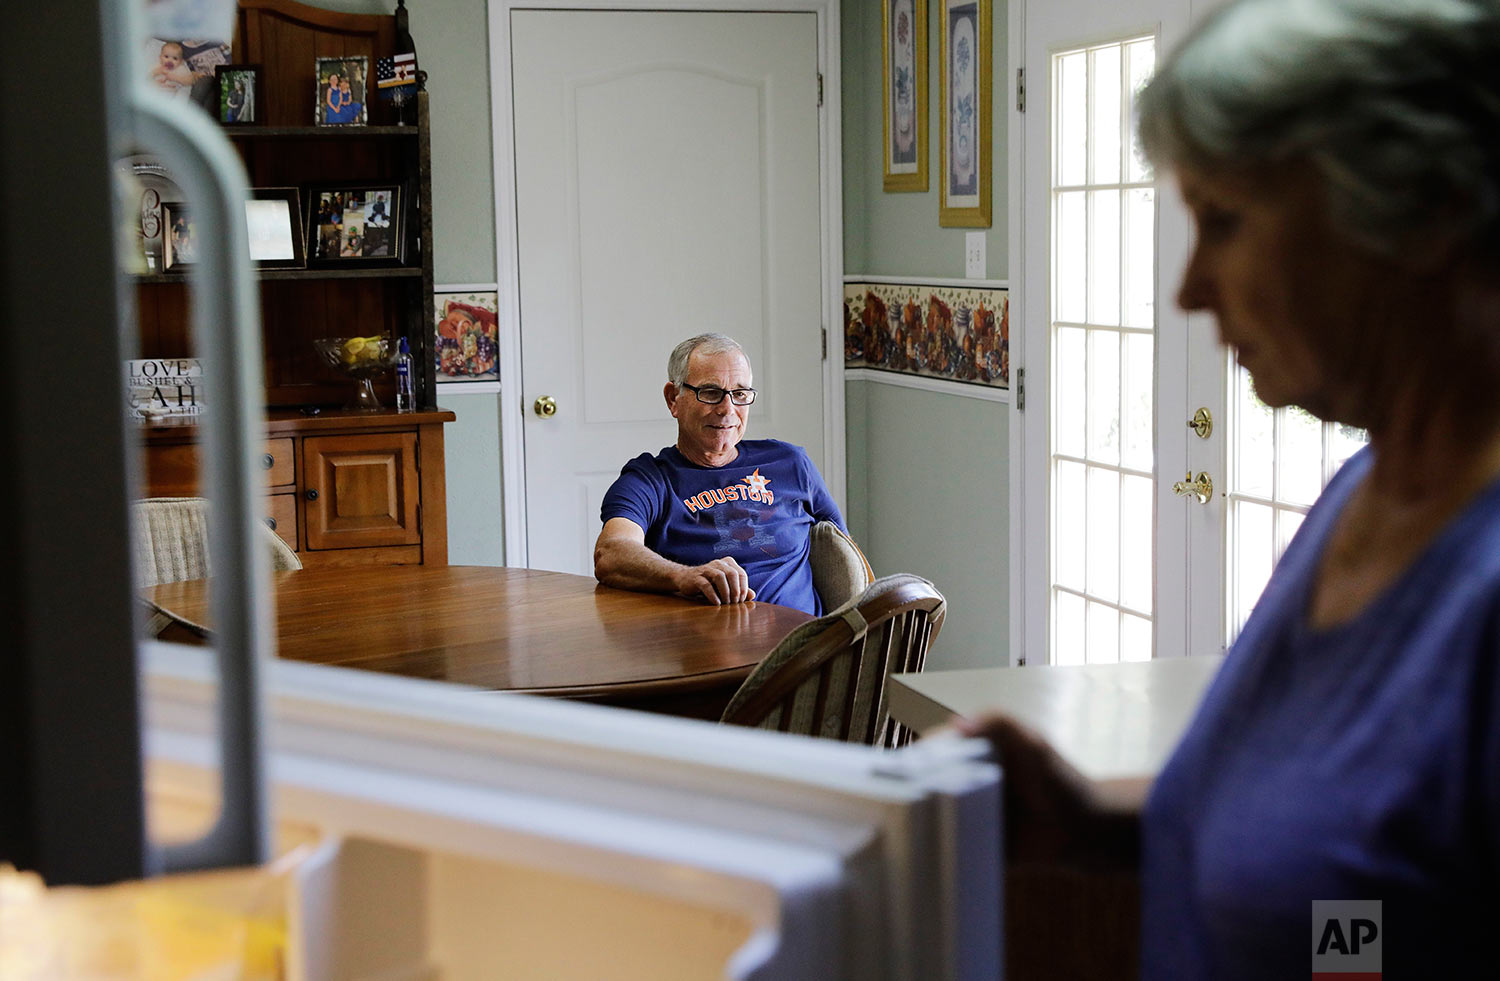 """Wayne Christopher sits in the kitchen of his home with his wife Polly in Nederland, Texas, Tuesday, Sept. 26, 2017. Christopher thinks Trump has a responsibility to seek the truth and act accordingly, for future generations. """"He's got a business mind, whatever it takes to make money, that's what he's going to do, to make America great again,"""" Christopher said, and that's why he voted for him. """"But it does make me wonder if he looks at global warming as a real harm. Because you can make all the money in the world here. But if you don't have a world, what good is it going to do you?"""" (AP Photo/David Goldman)"""